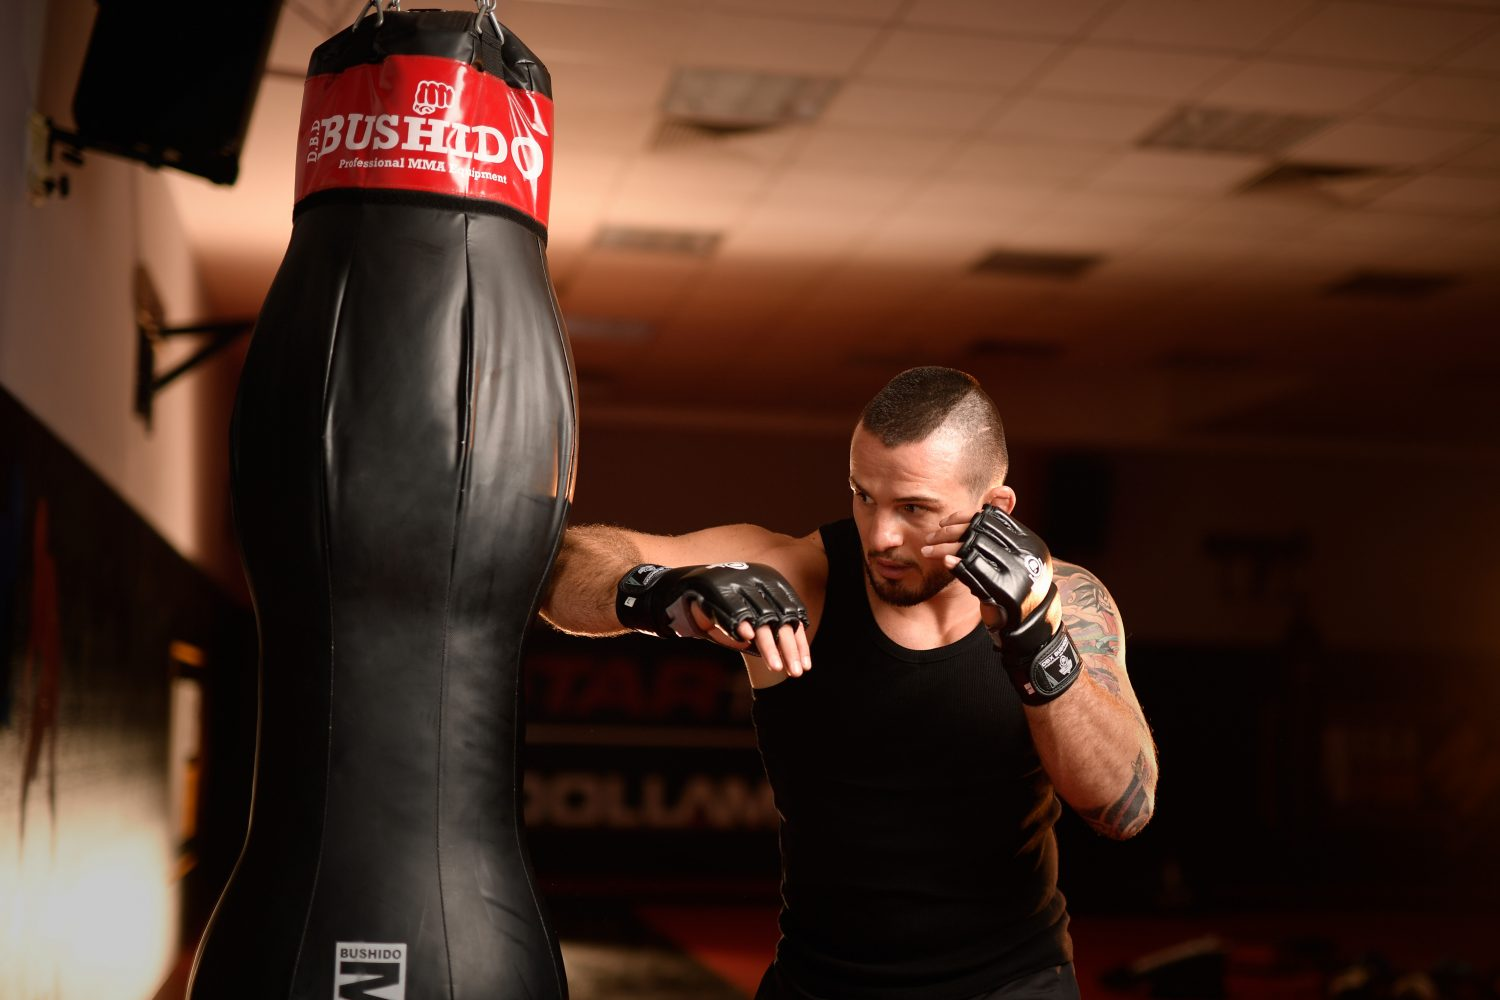 FightZone.nl - martial arts products, services and nutritional supplements - Bushido - training in the gym - slider image 2